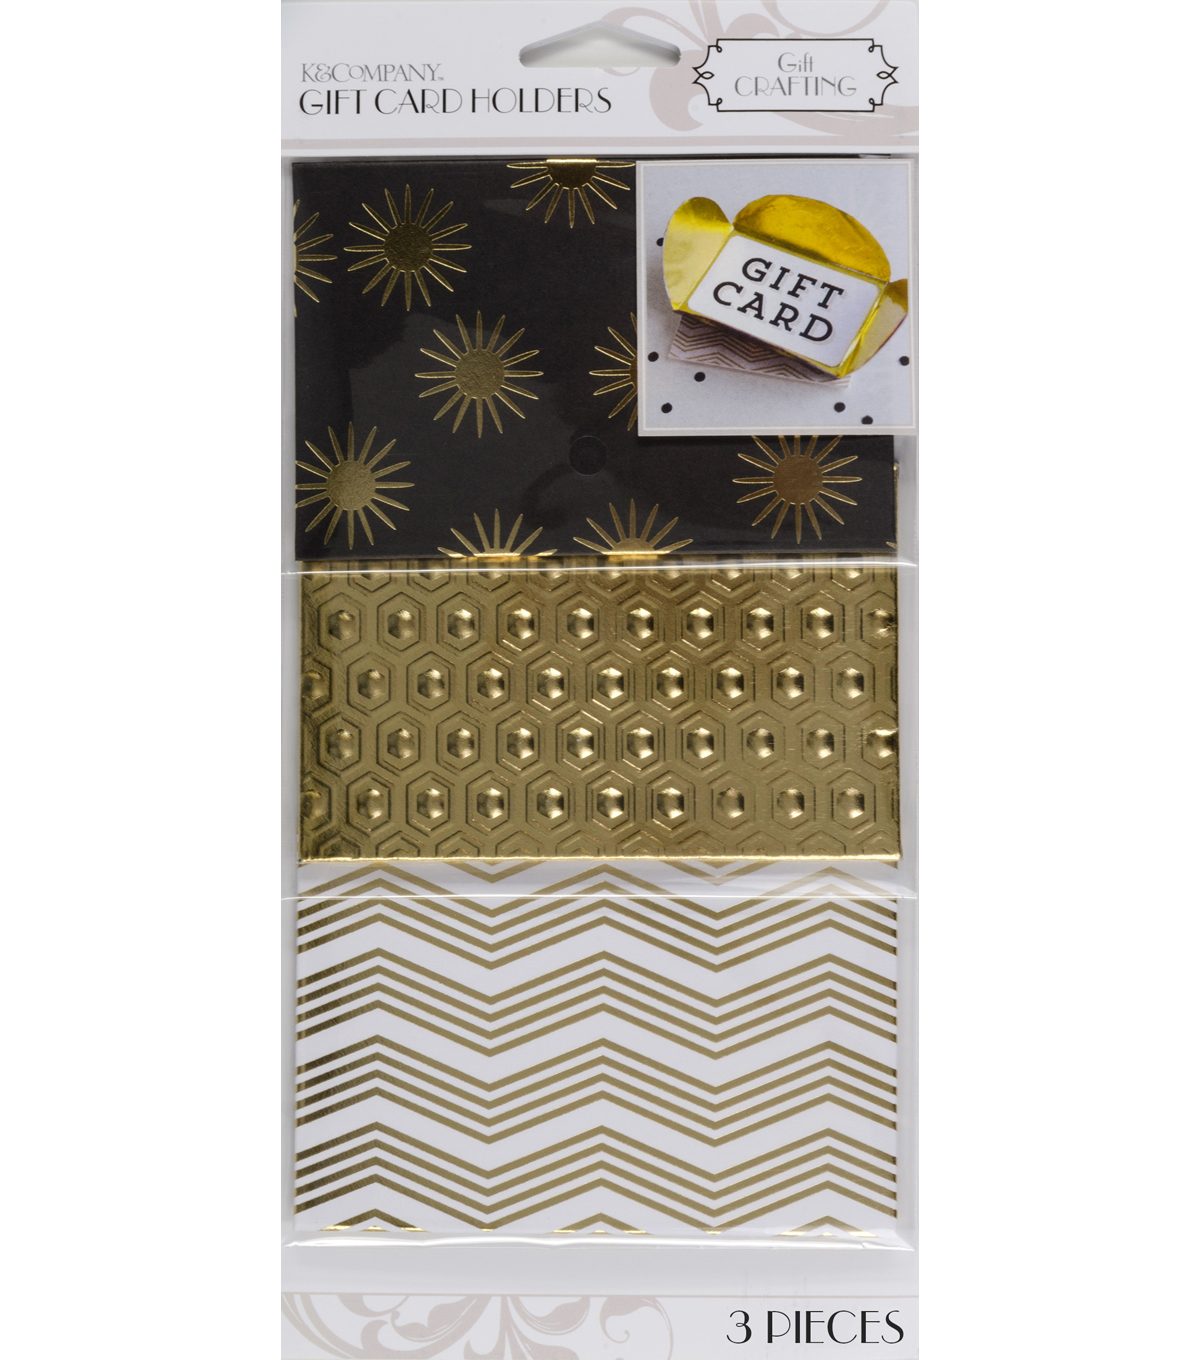 K&Company Gold Foil Gift Card Holders